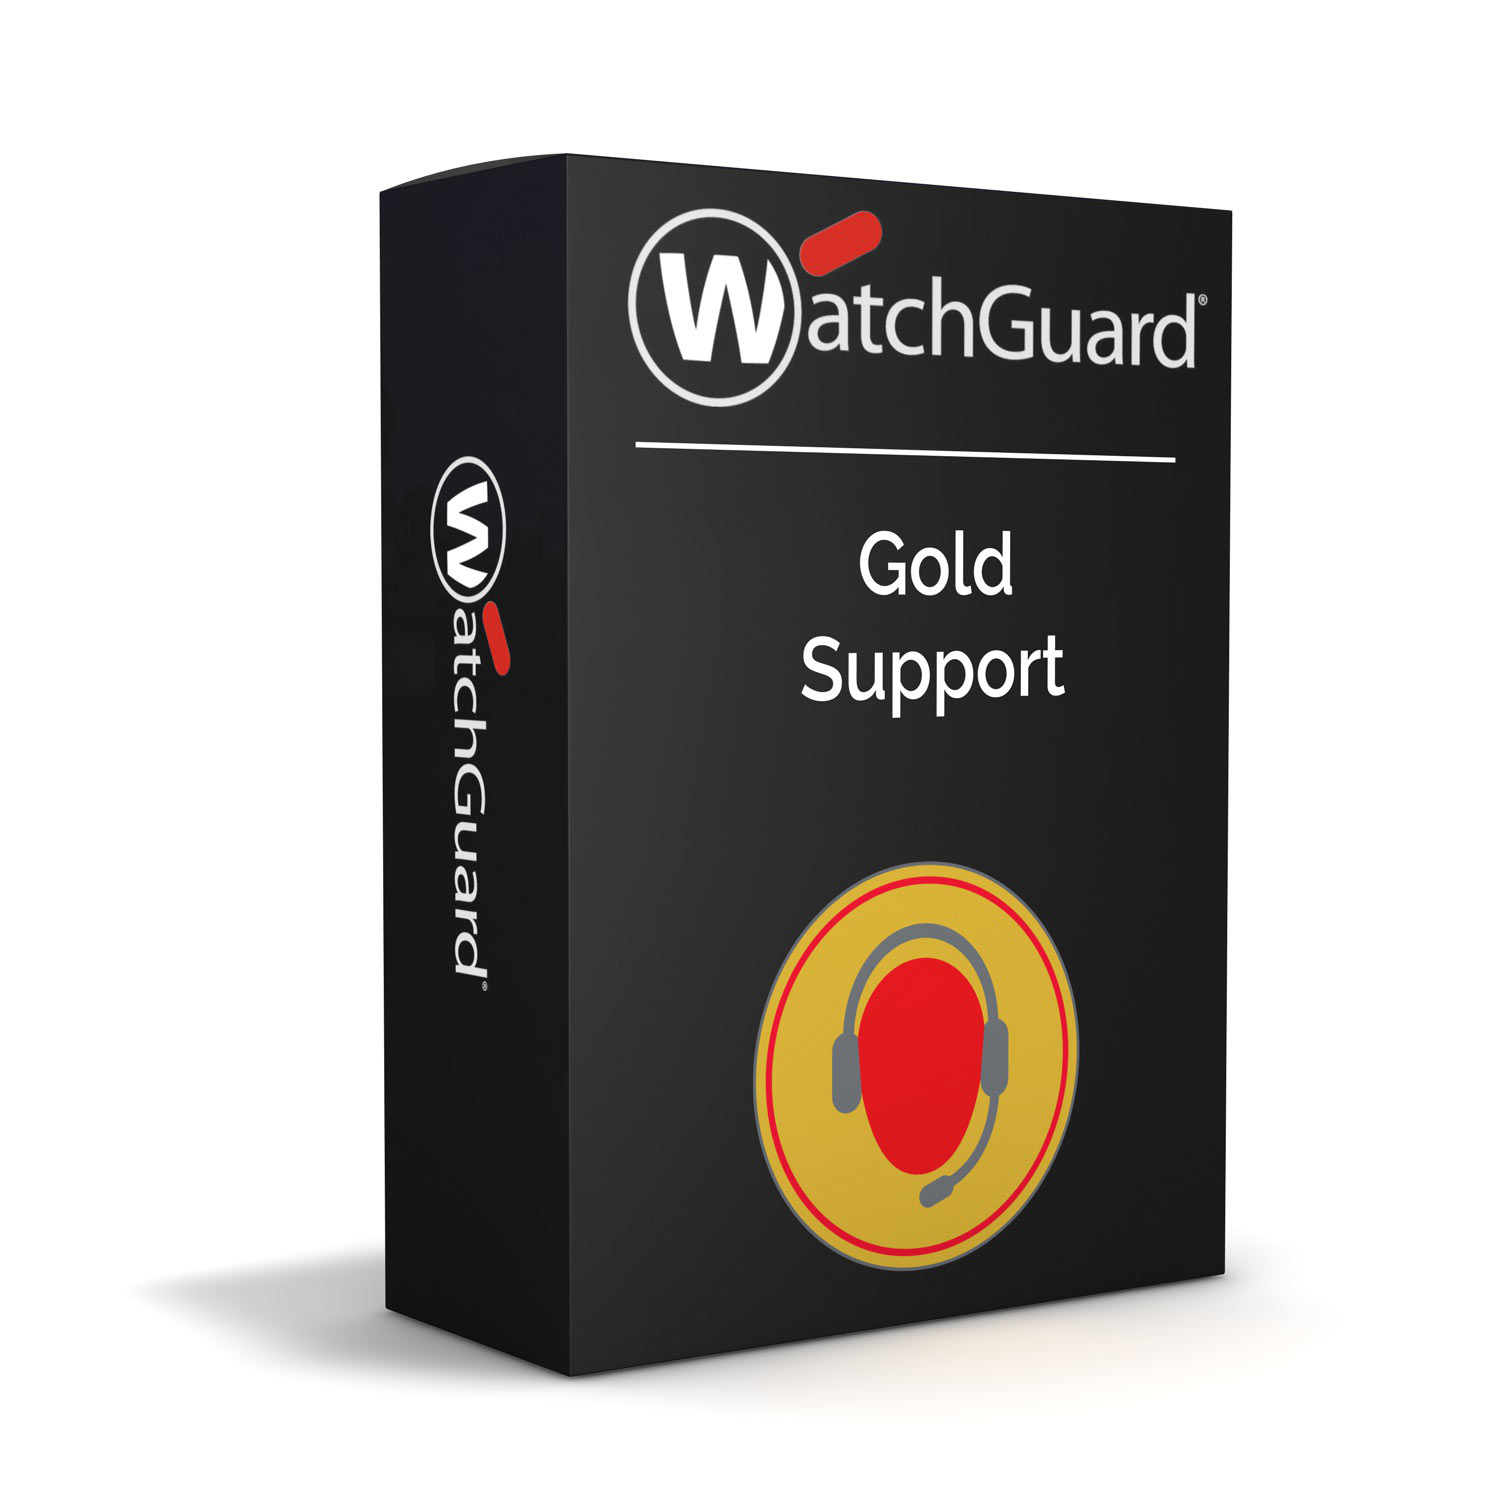 WatchGuard Gold Support Renewal/Upgrade 1-yr for Firebox T80